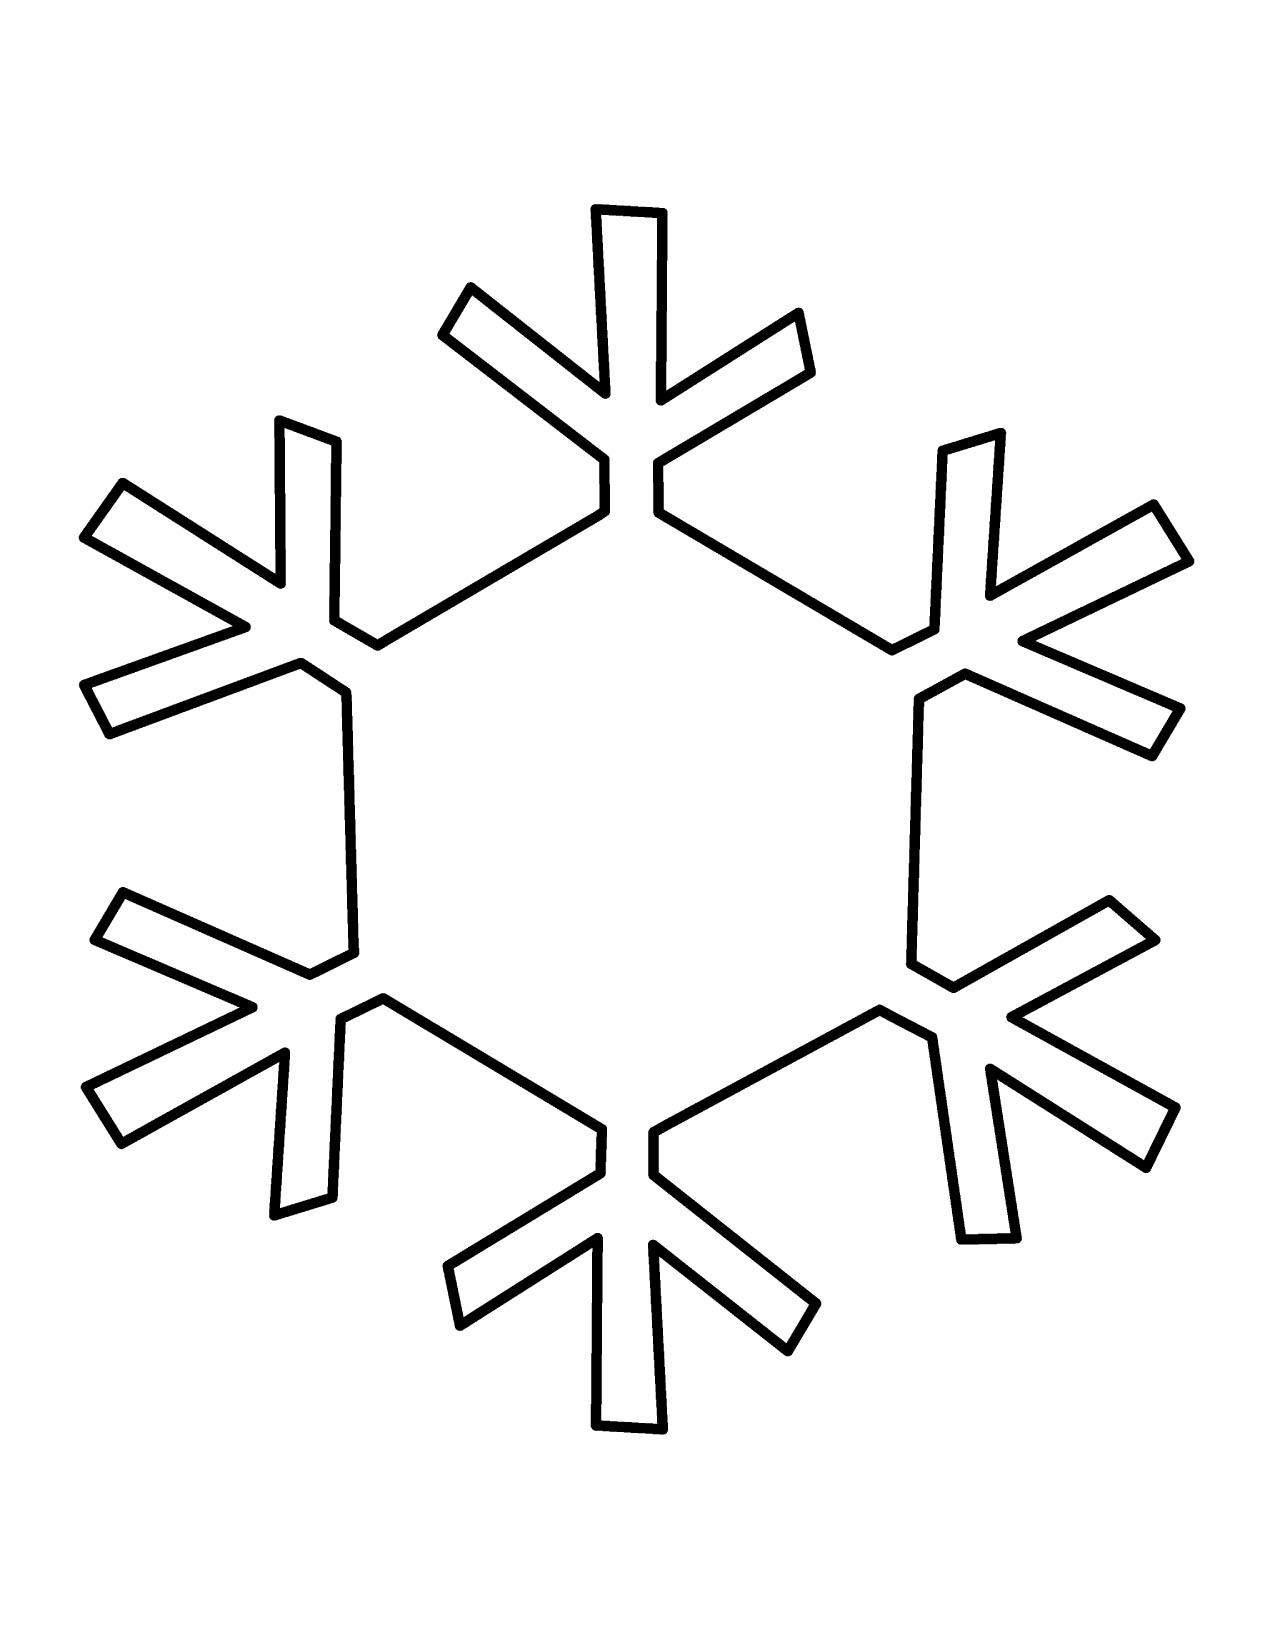 Free images download clip. Clipart snowflake cut out